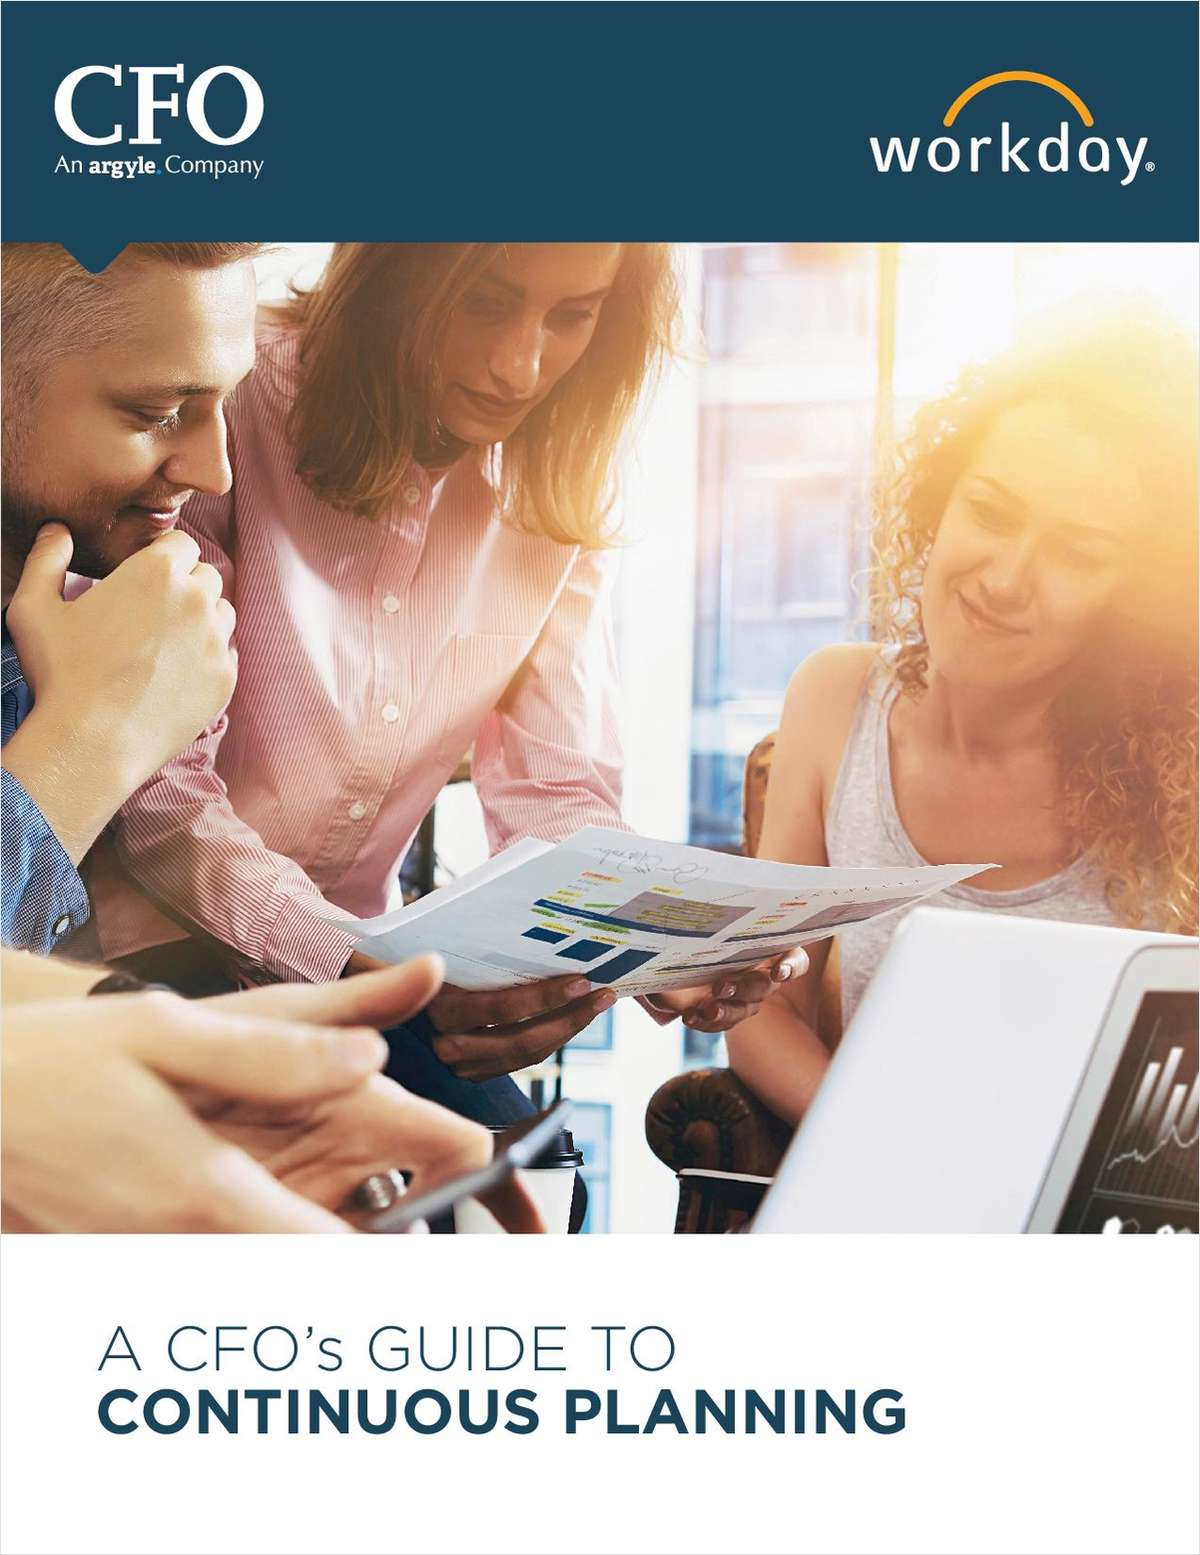 A CFO's GUIDE TO  CONTINUOUS PLANNING